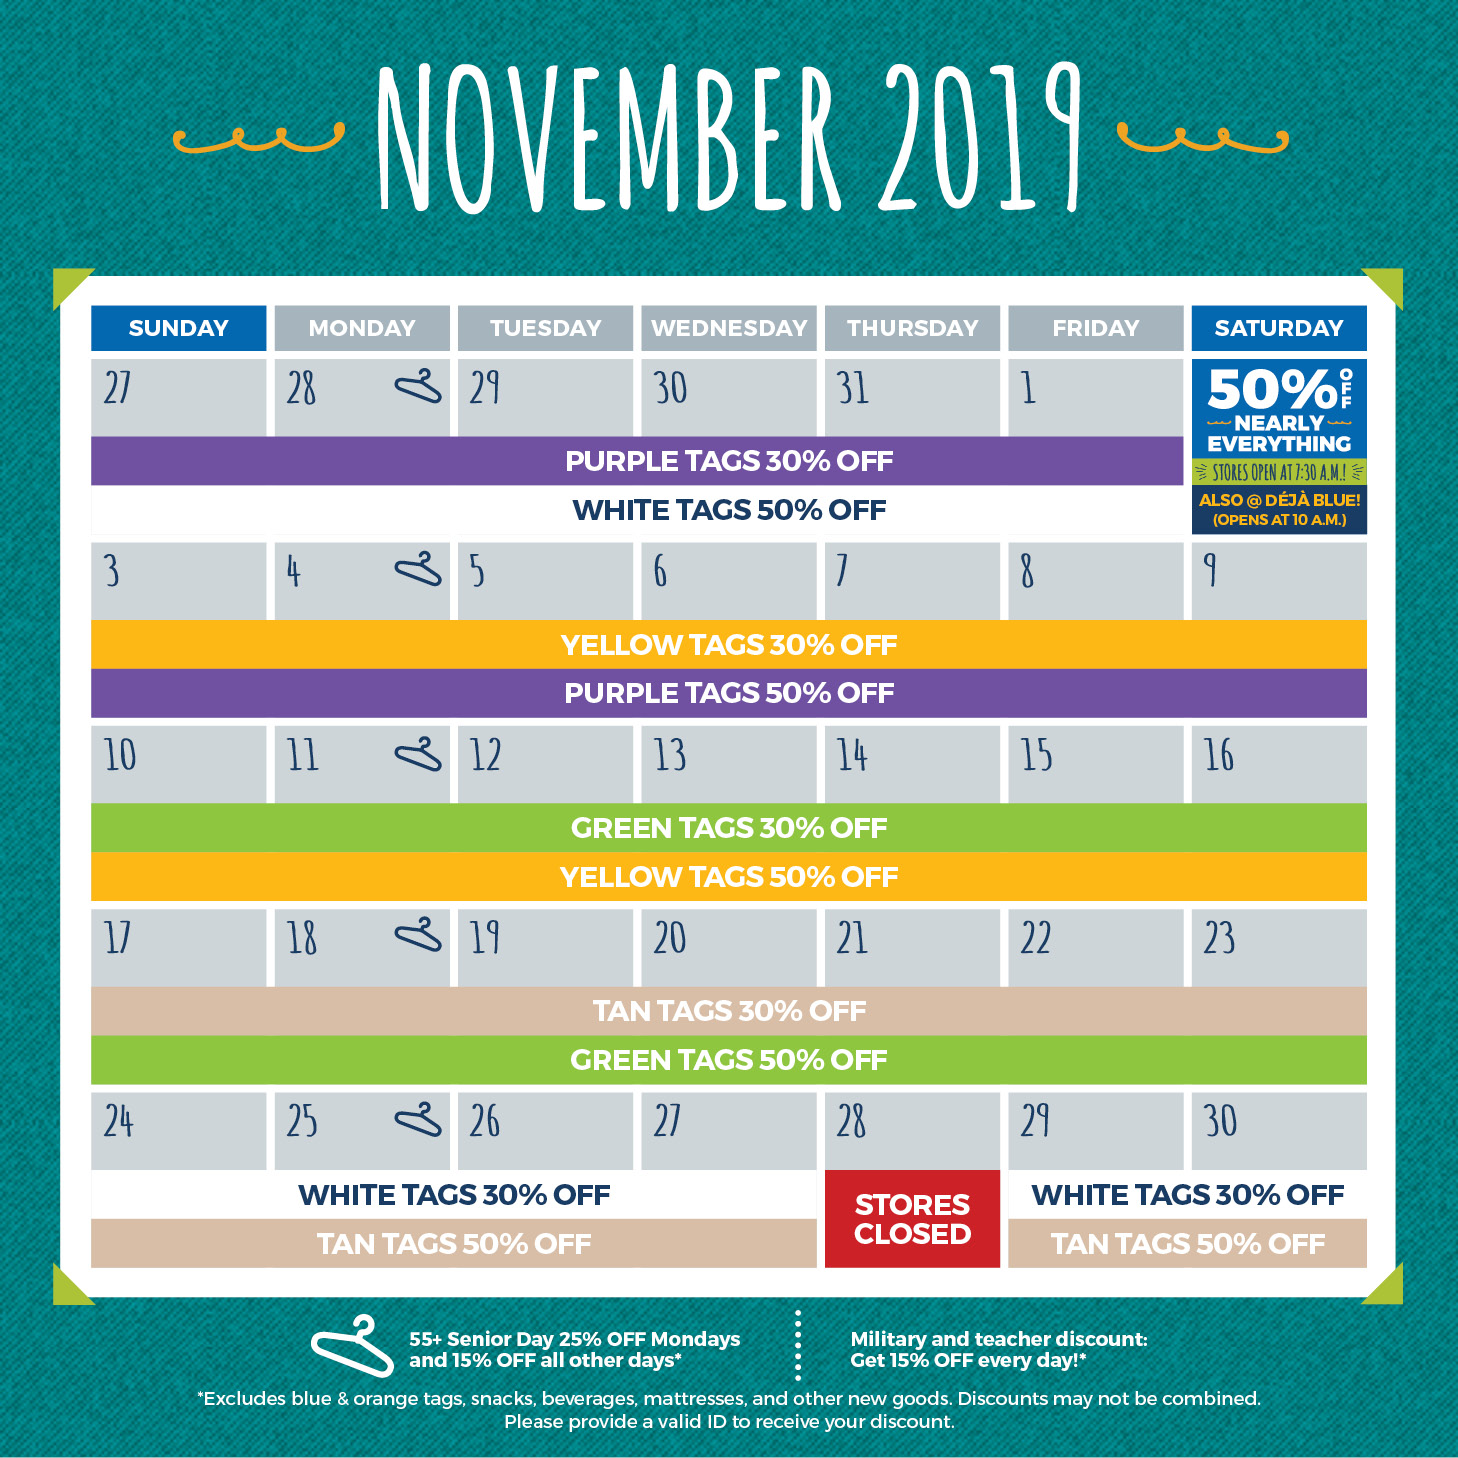 Click image to view larger calendar